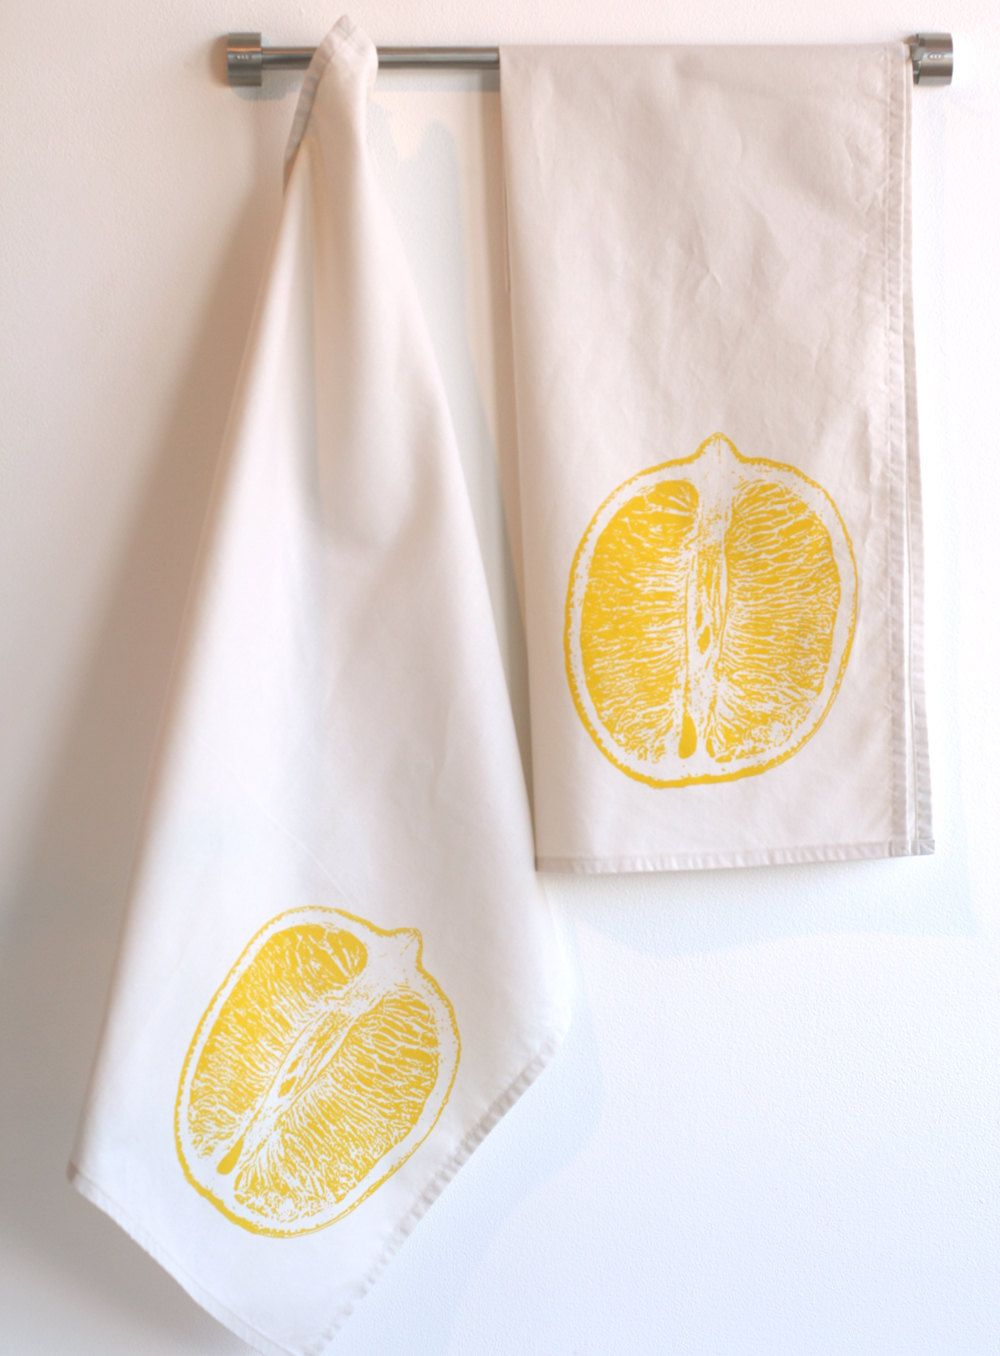 Lemon Tea Towel - Cream Cotton with lemon yellow print